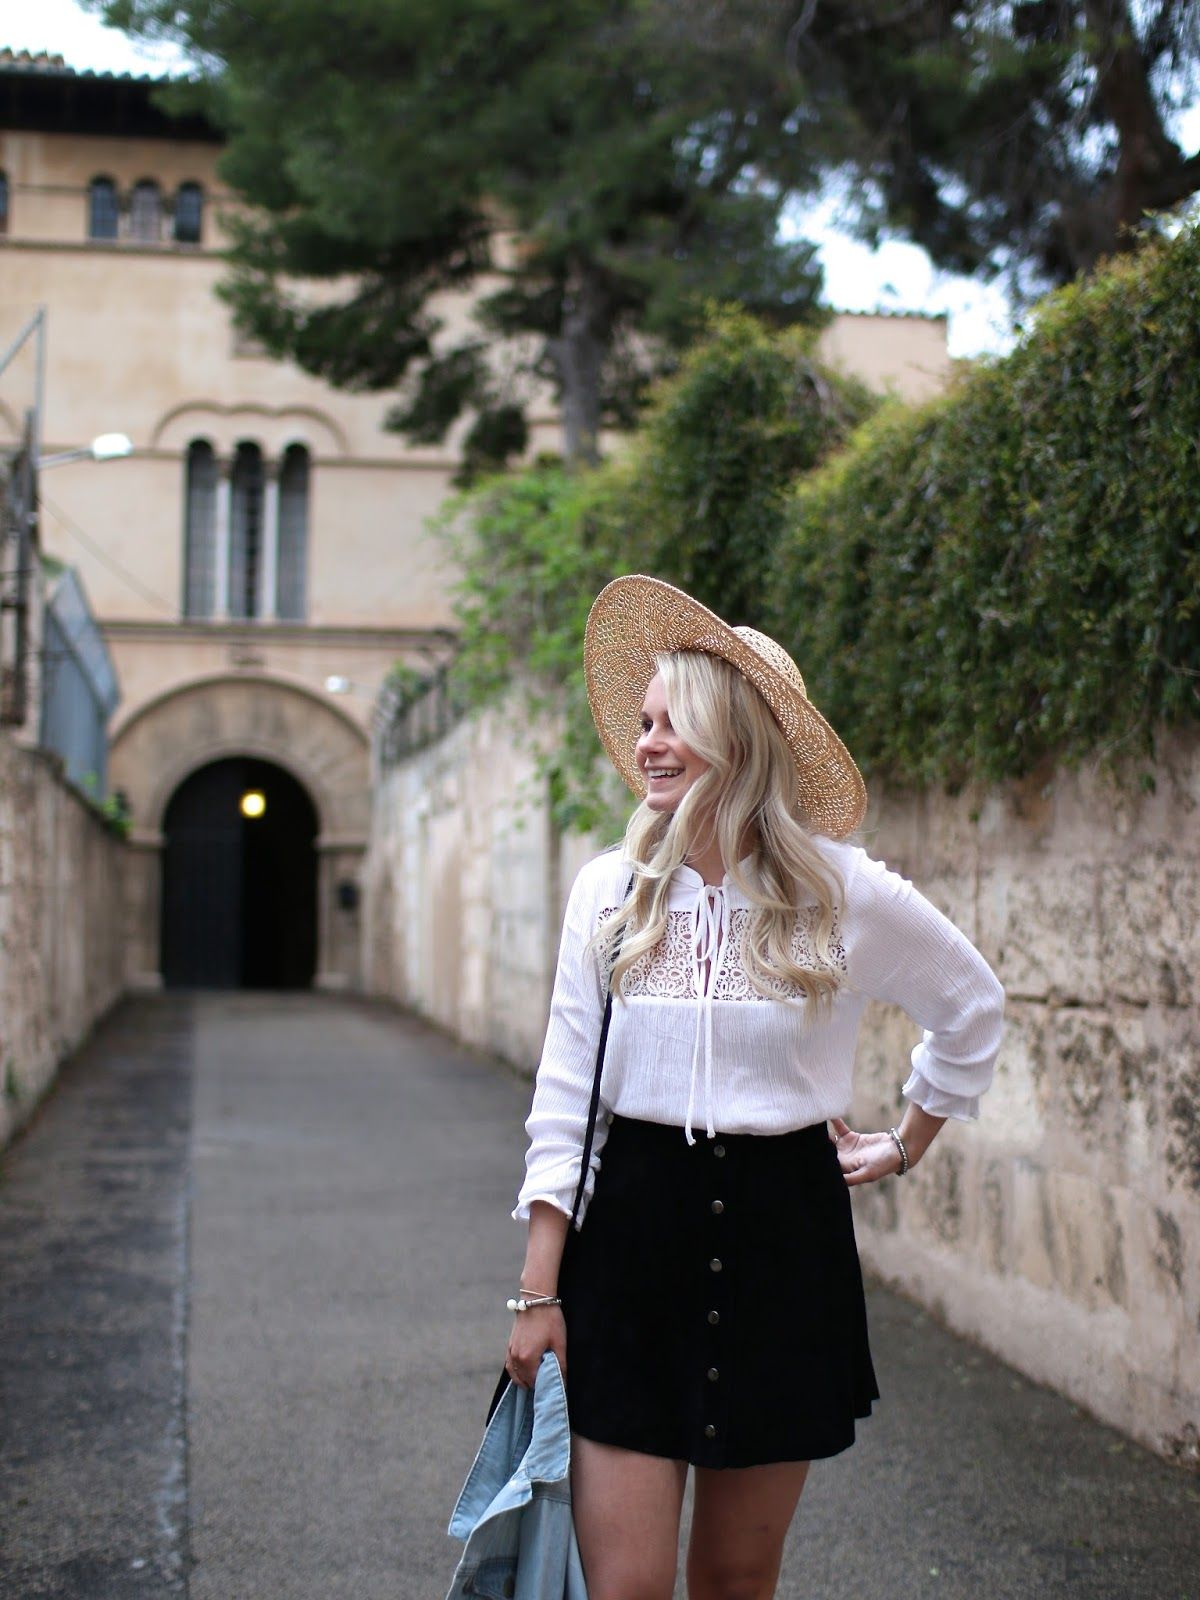 LOST IN PALMA, SPAIN - aandreaclare